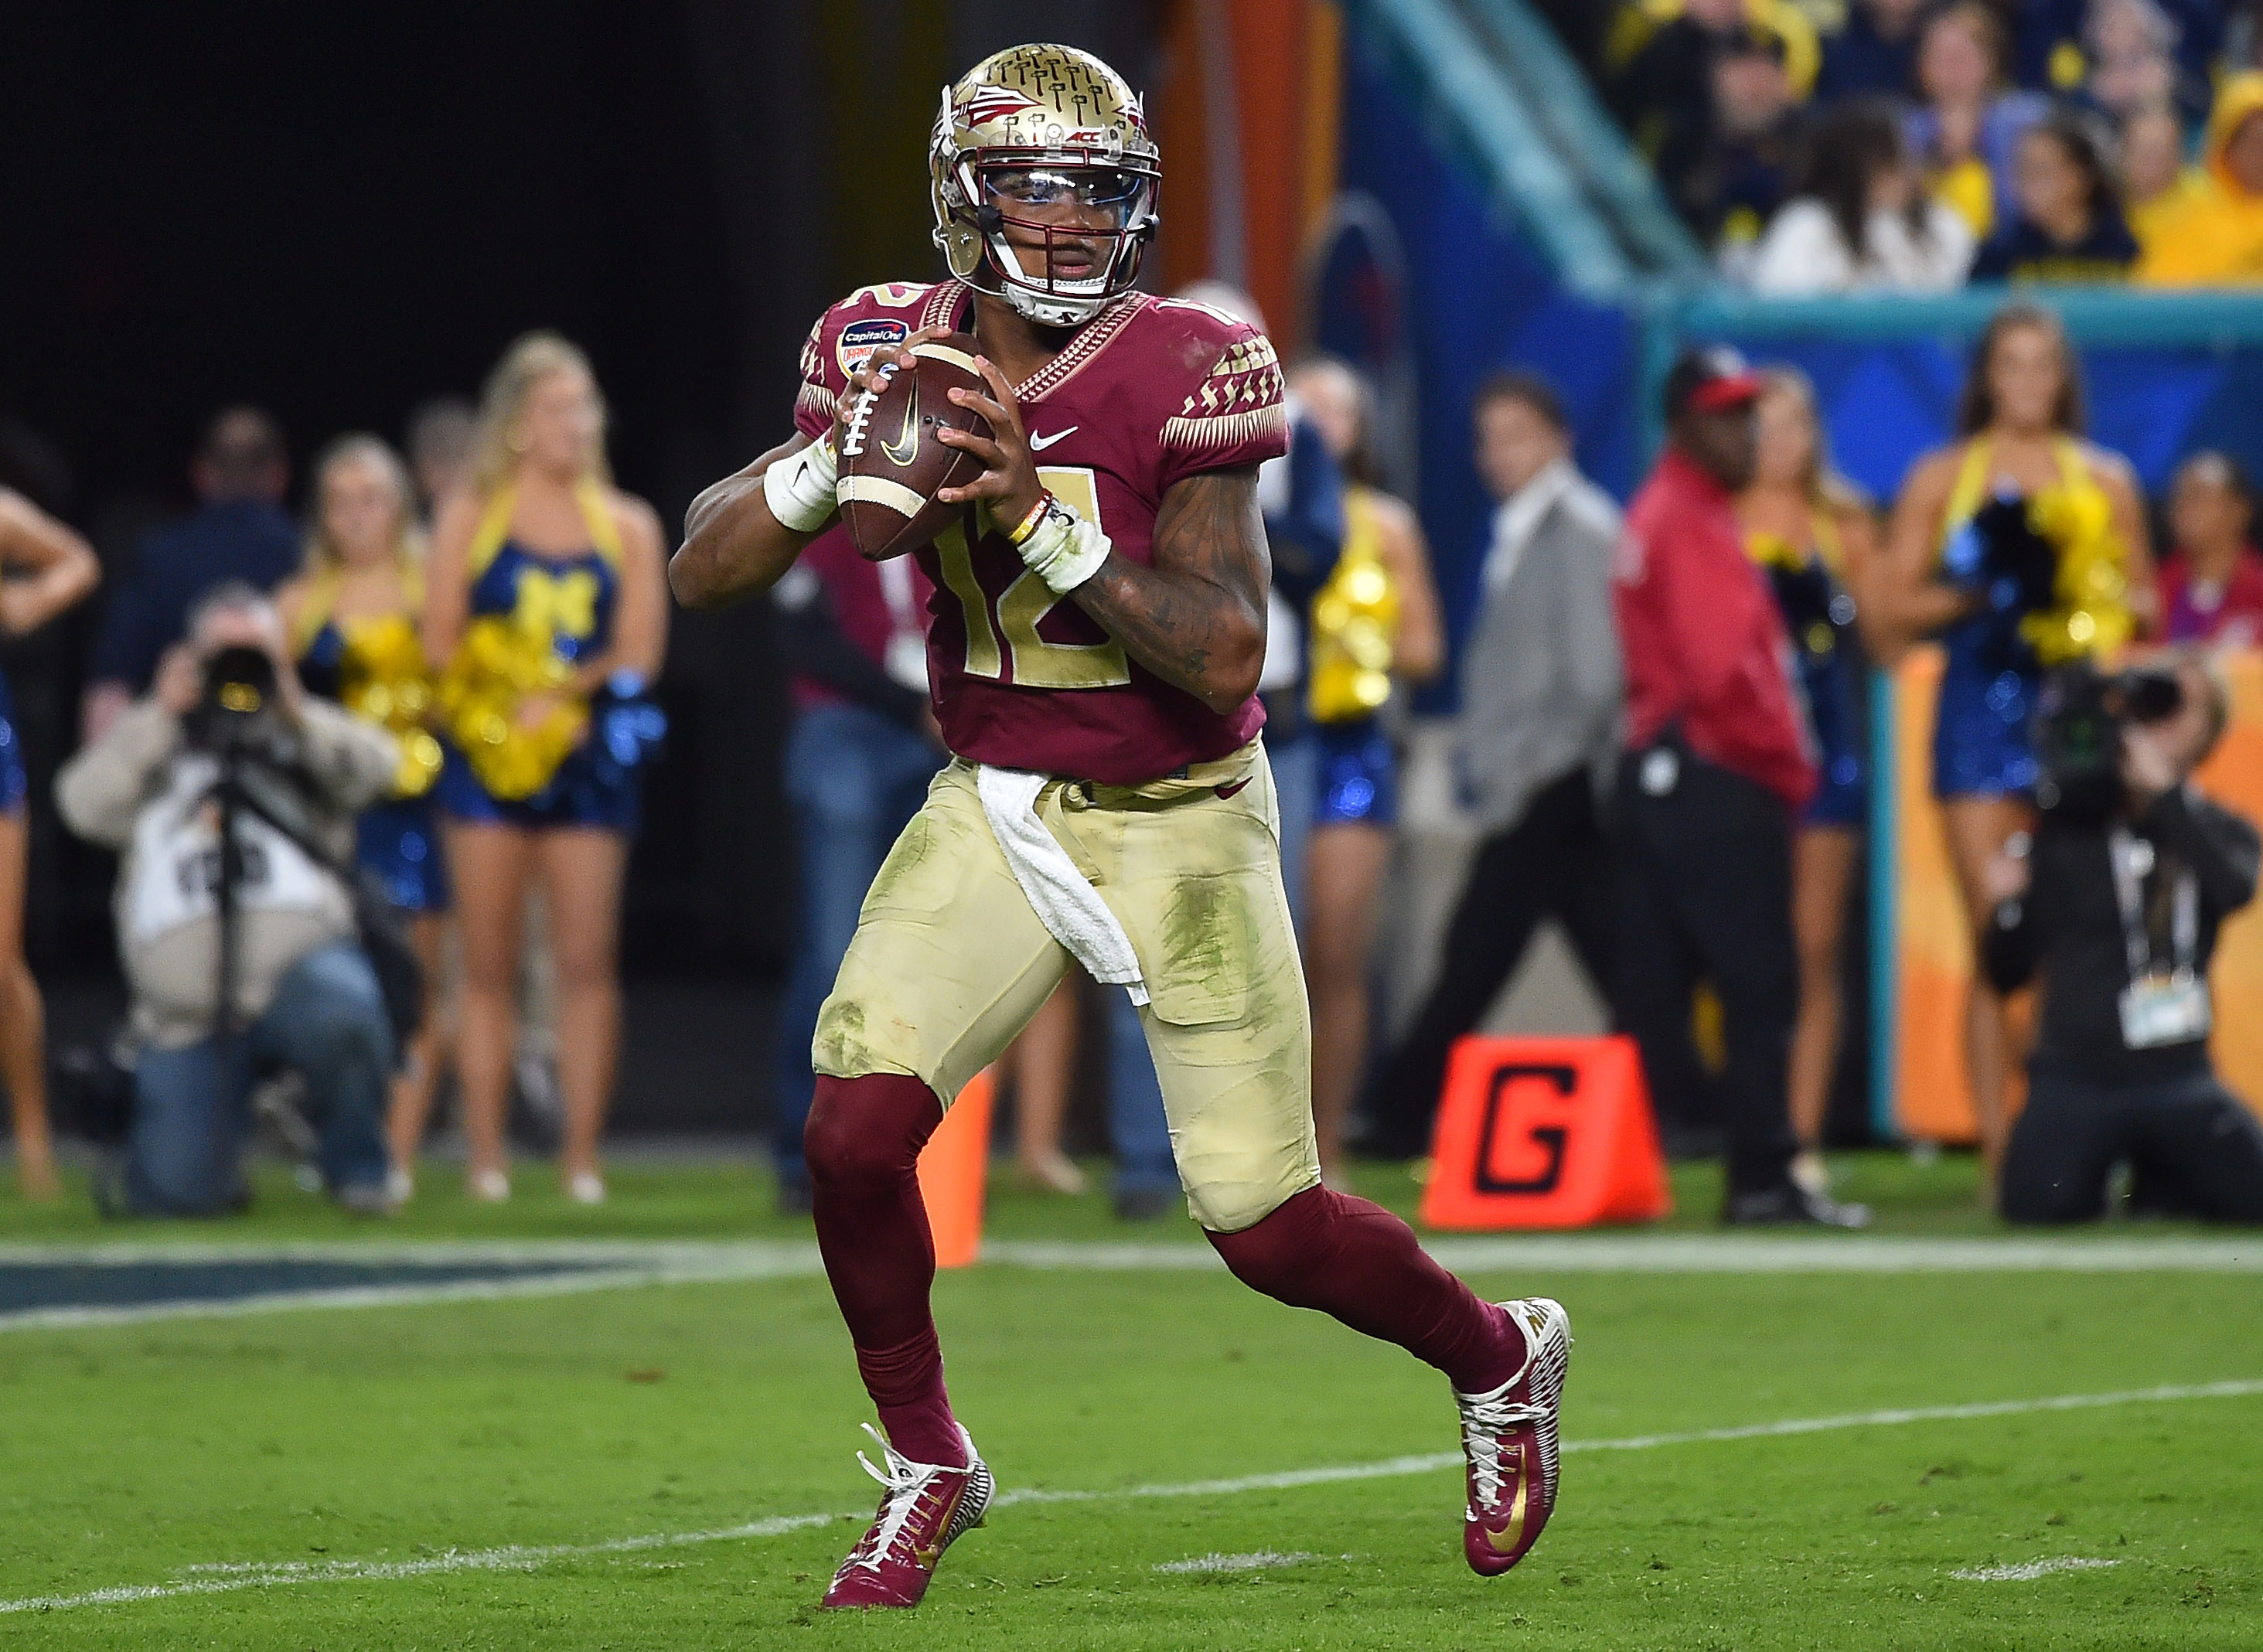 Florida State QB Francois investigated for domestic violence